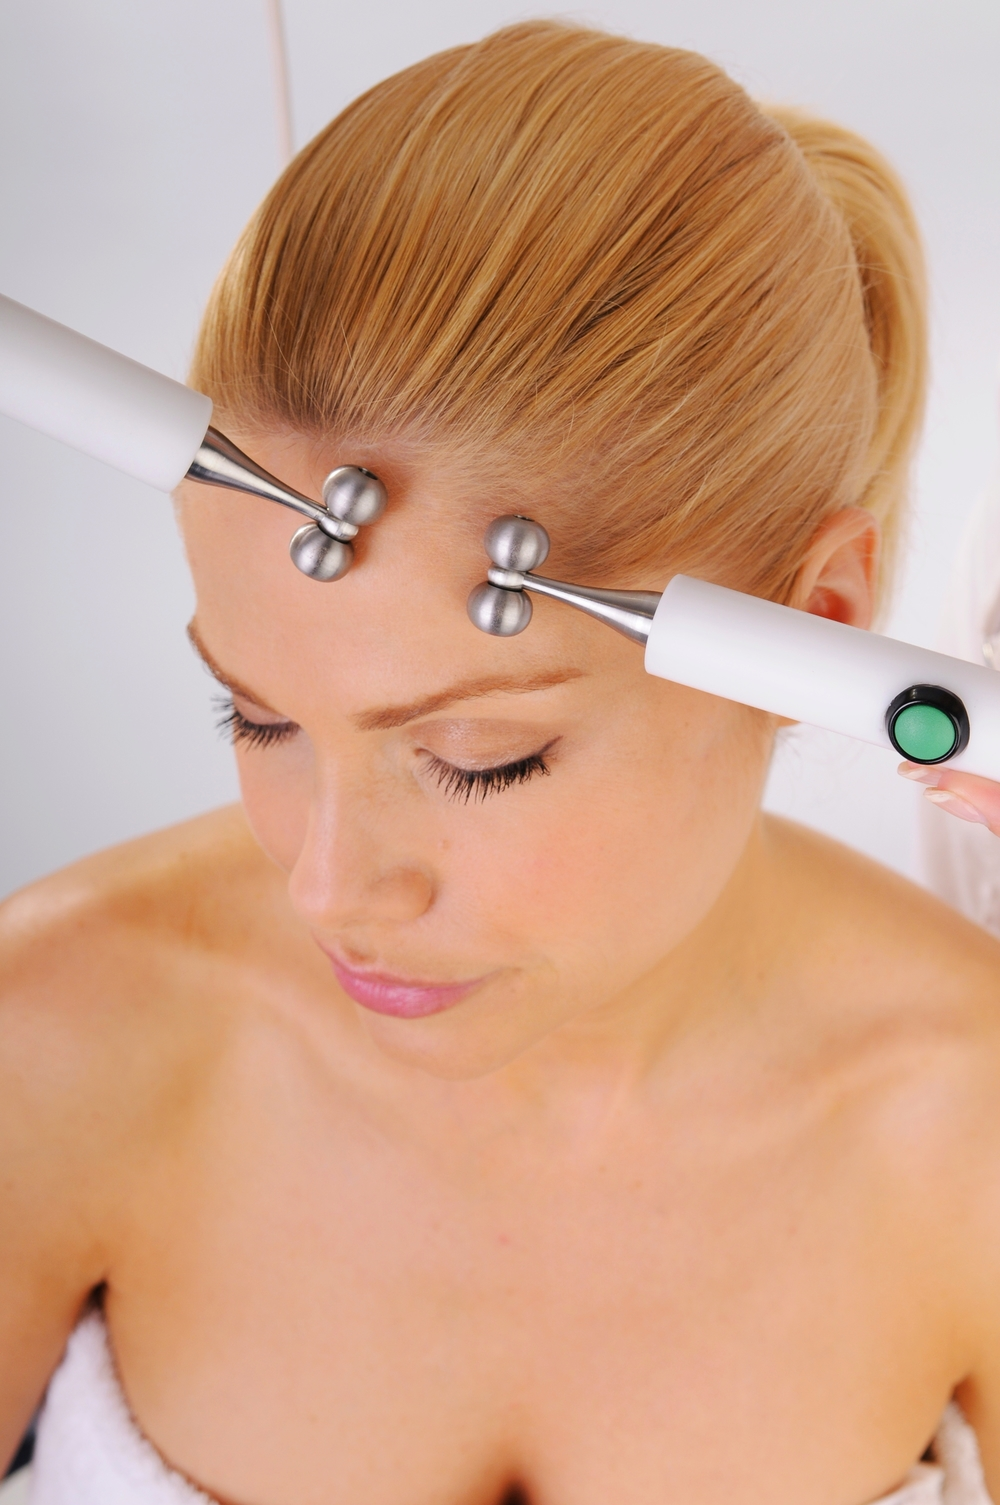 CACI Super Non Surgical Facelift